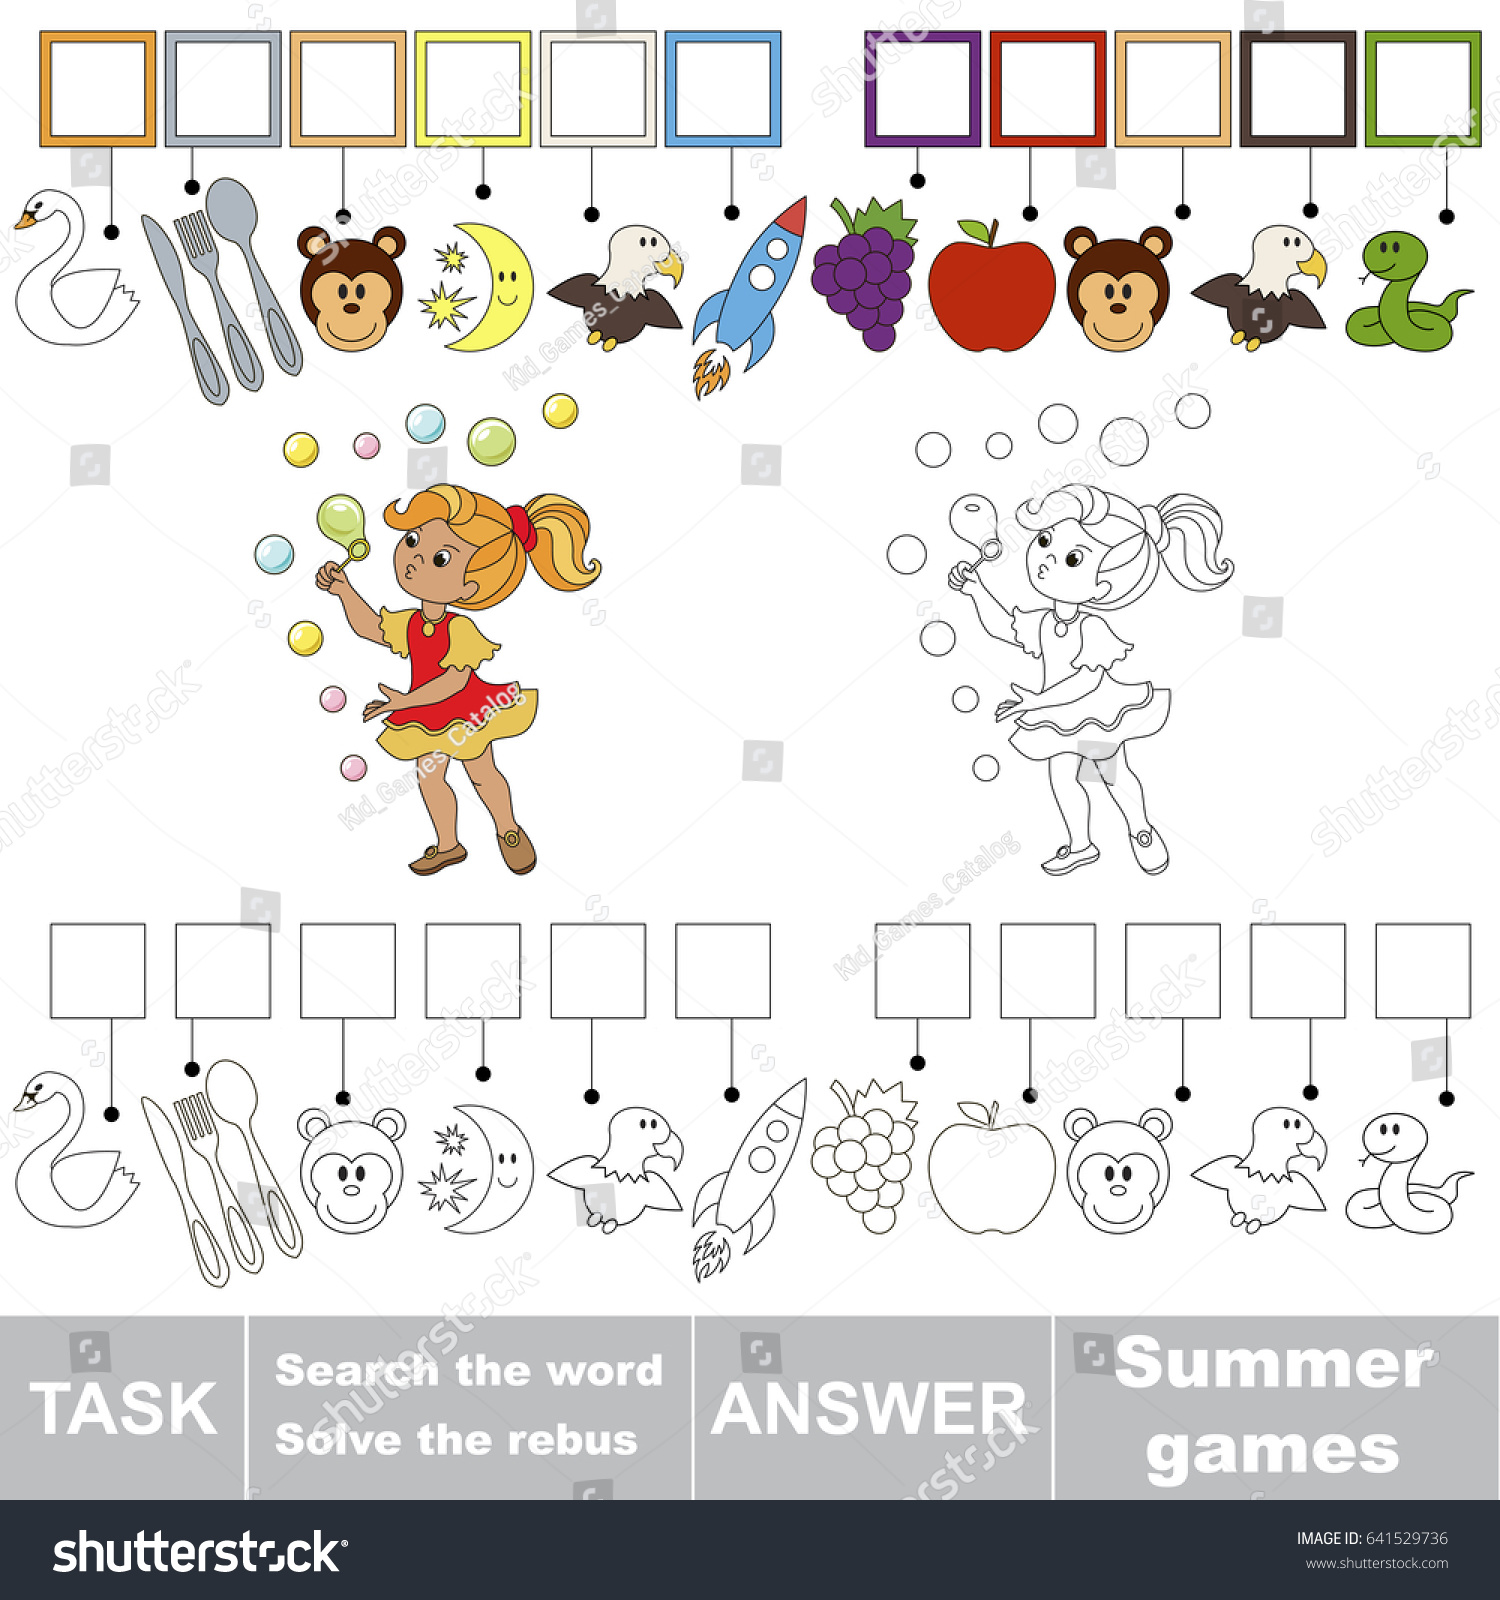 Lovely Crossword Puzzle Help Tiny Crossword Puzzles For Seniors Regular Fun Puzzle Games Make Your Own Puzzle Youthful Personalized Stool Puzzle BrightPuzzles And Dragons Guide Educational Puzzle Game Kids Find Hidden Stock Vector 641529736 ..